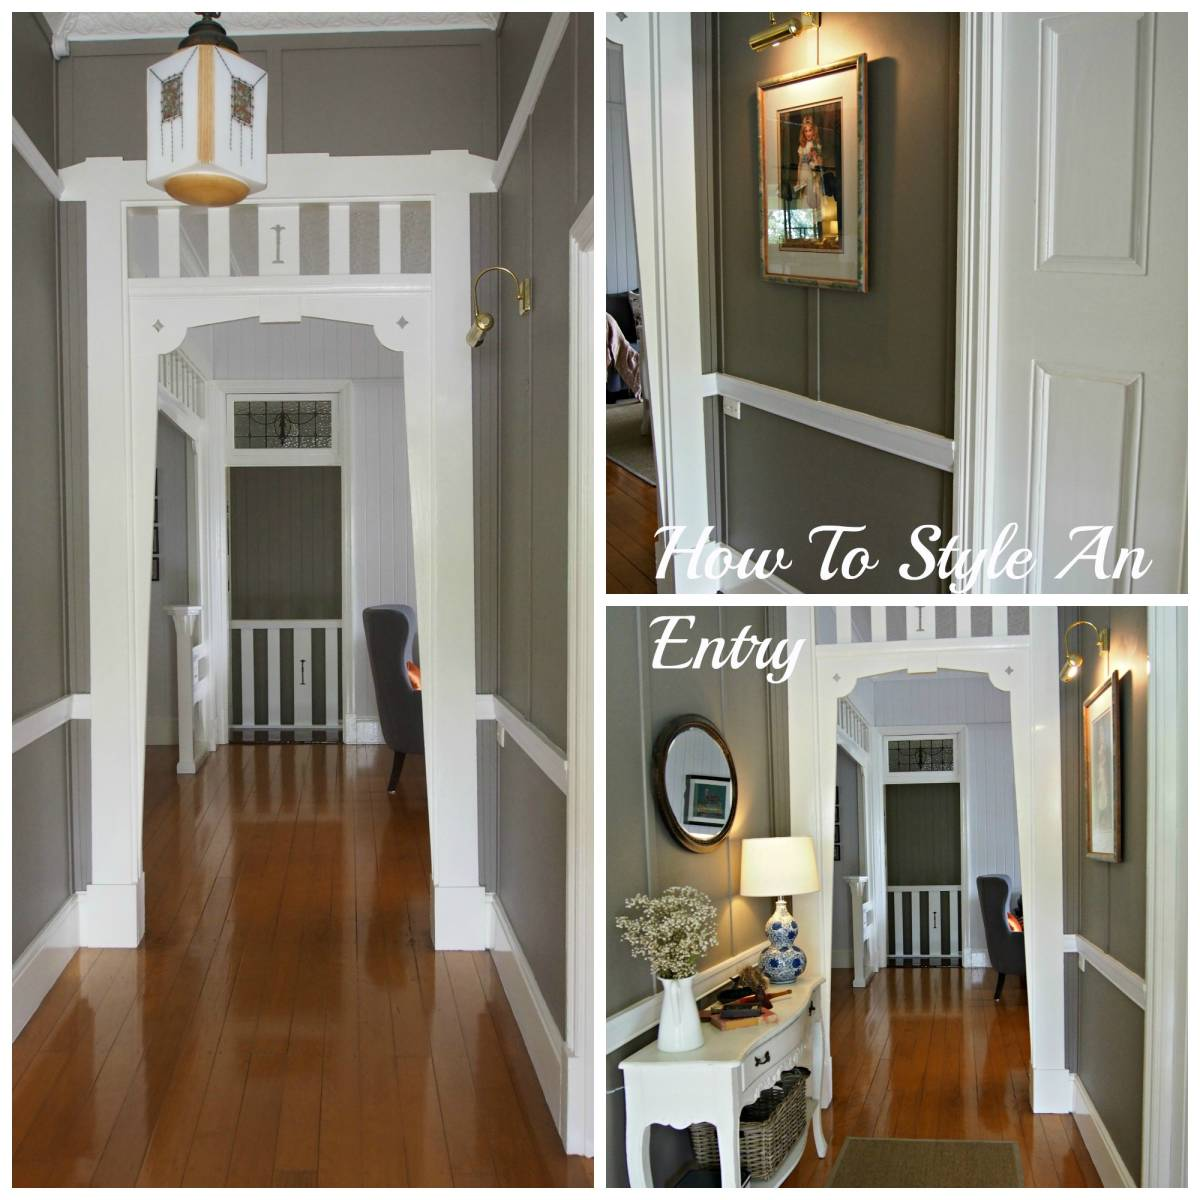 Styling An Entry-Home Improvement Thursday #HIT